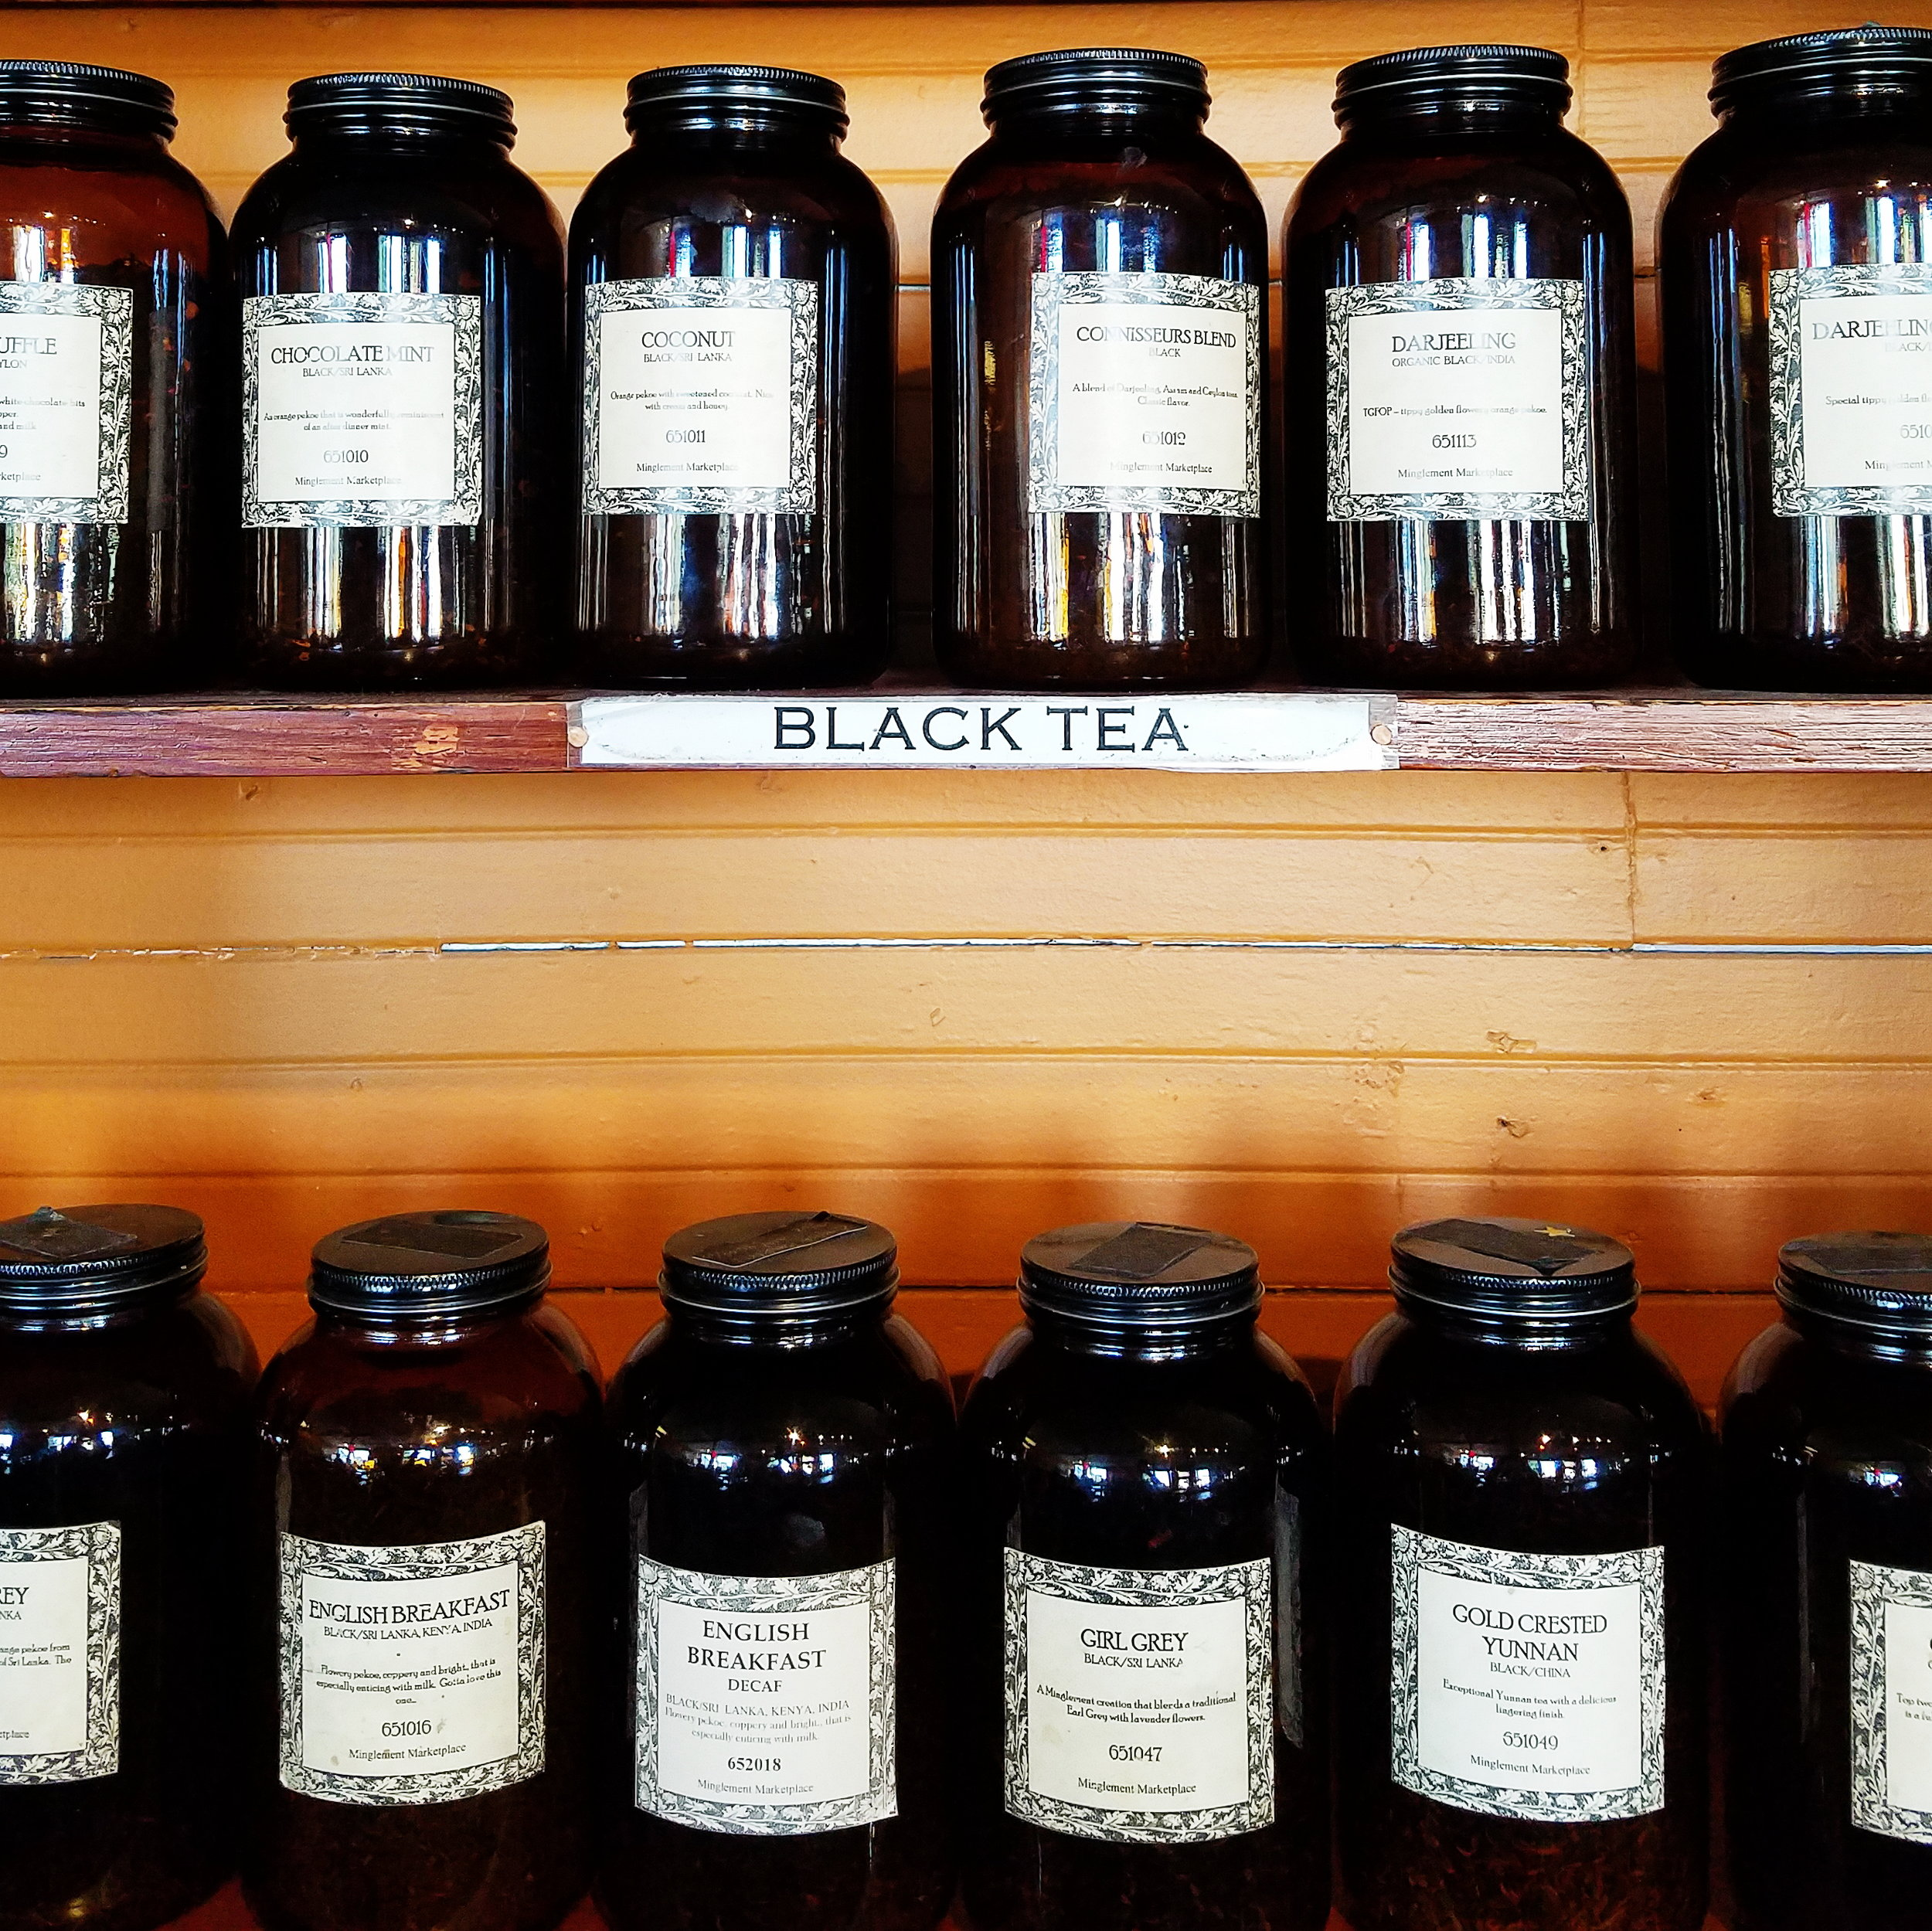 I was surprised to find the Vashon Island Coffee Roasterie also had an impressive stock of loose leaf teas!